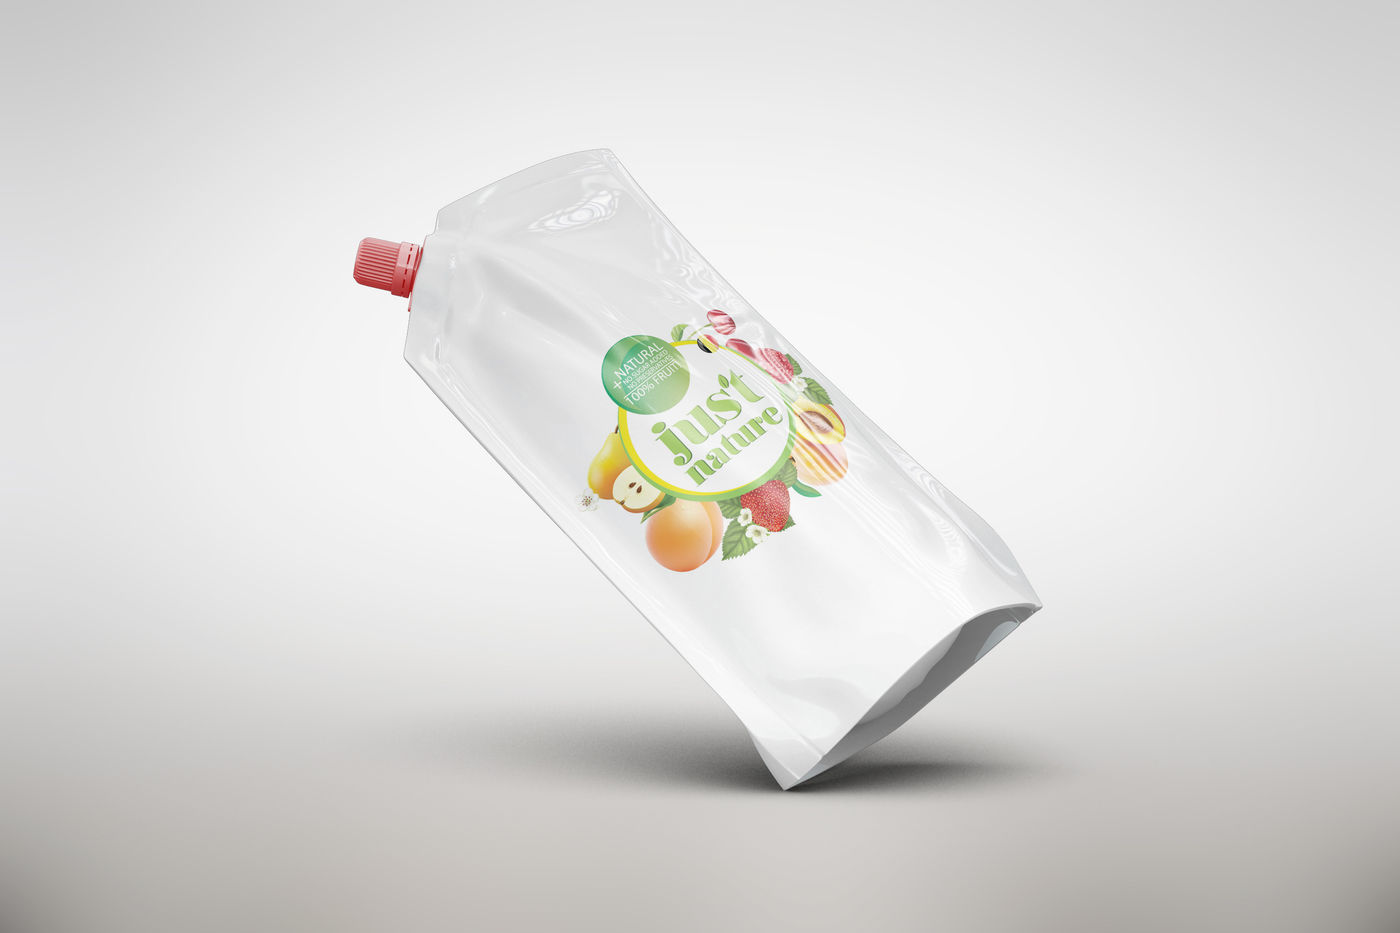 Download Realistic Chips Bag Mockup Free Psd Yellowimages